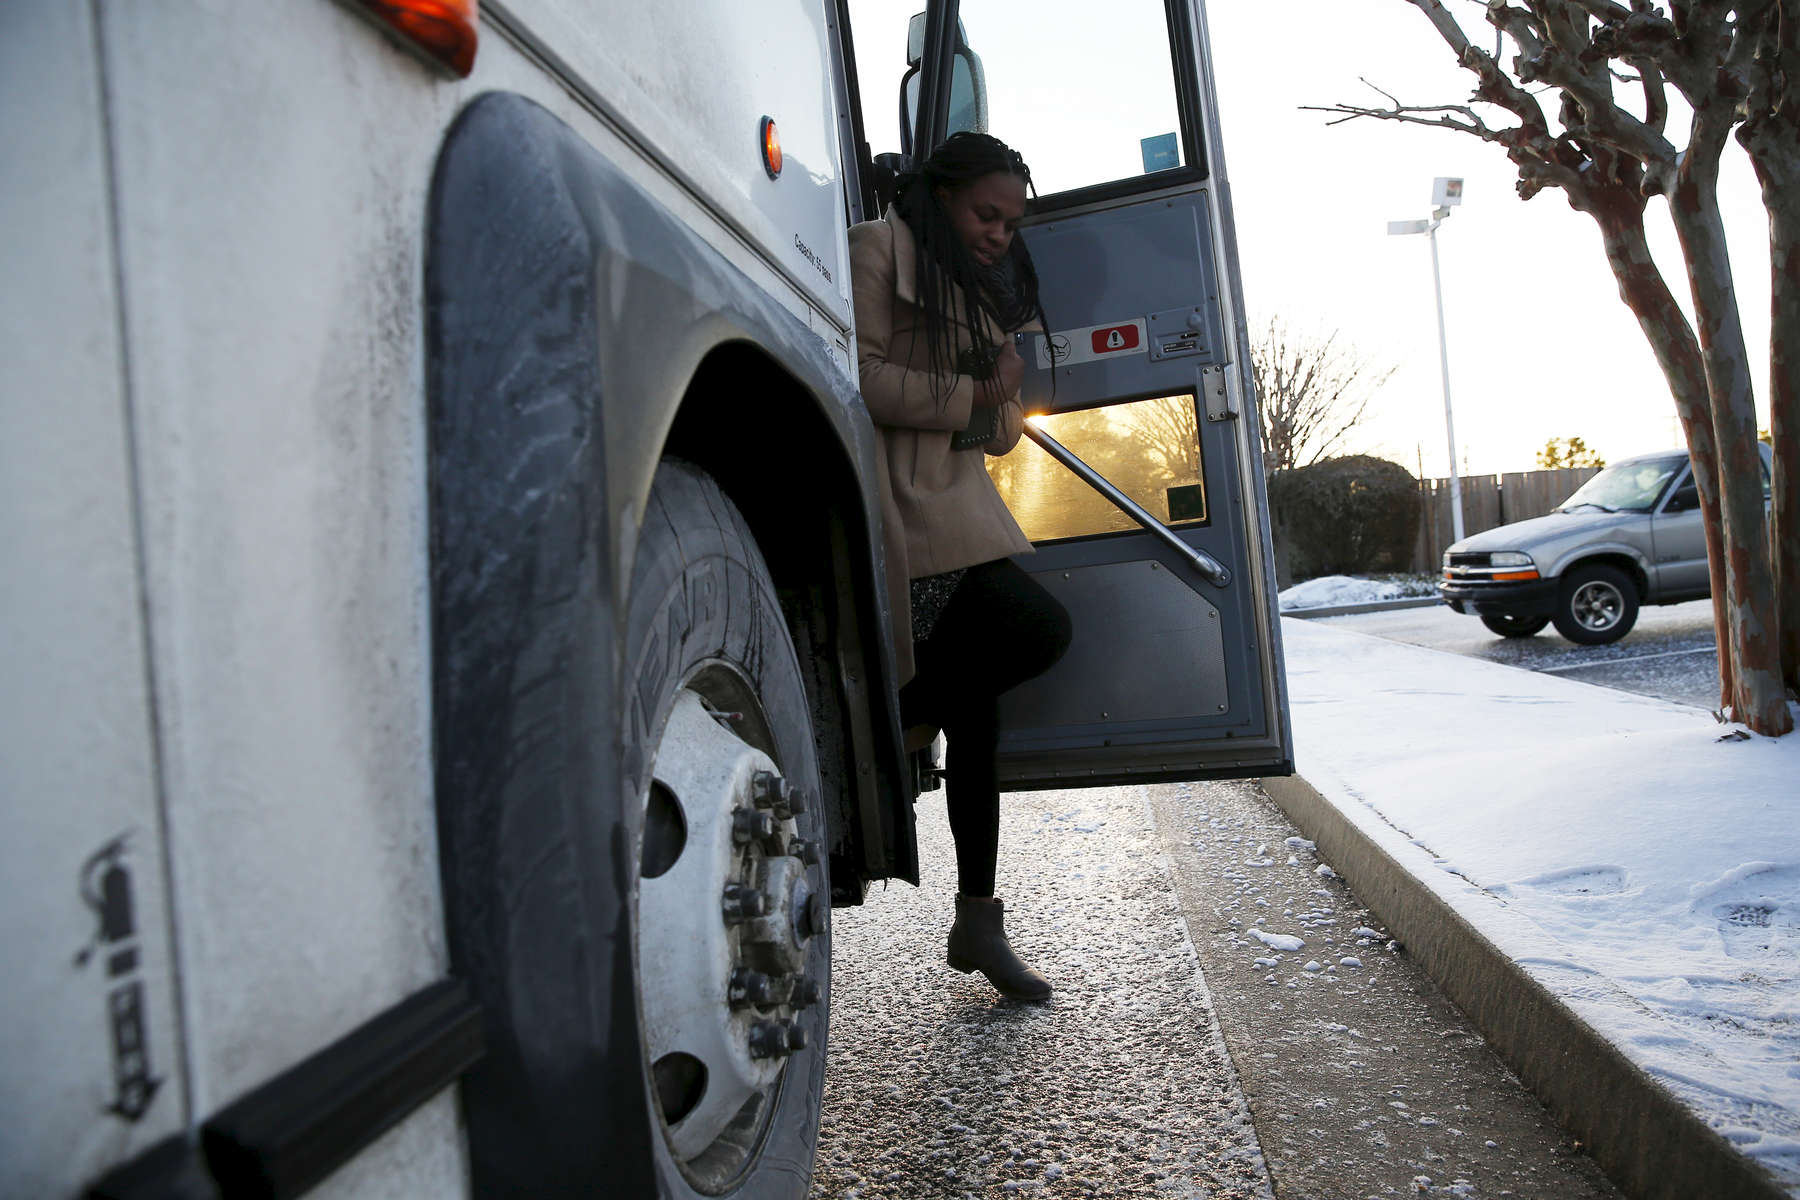 Journey To Selma -- 3/06/2015-- A student steps off of the bus onto icy pavement near Richmond, Virginia during a pitstop on the journey to Selma, Alabama March 6, 2015. Jessica Rinaldi/Globe StaffTopic: Reporter: